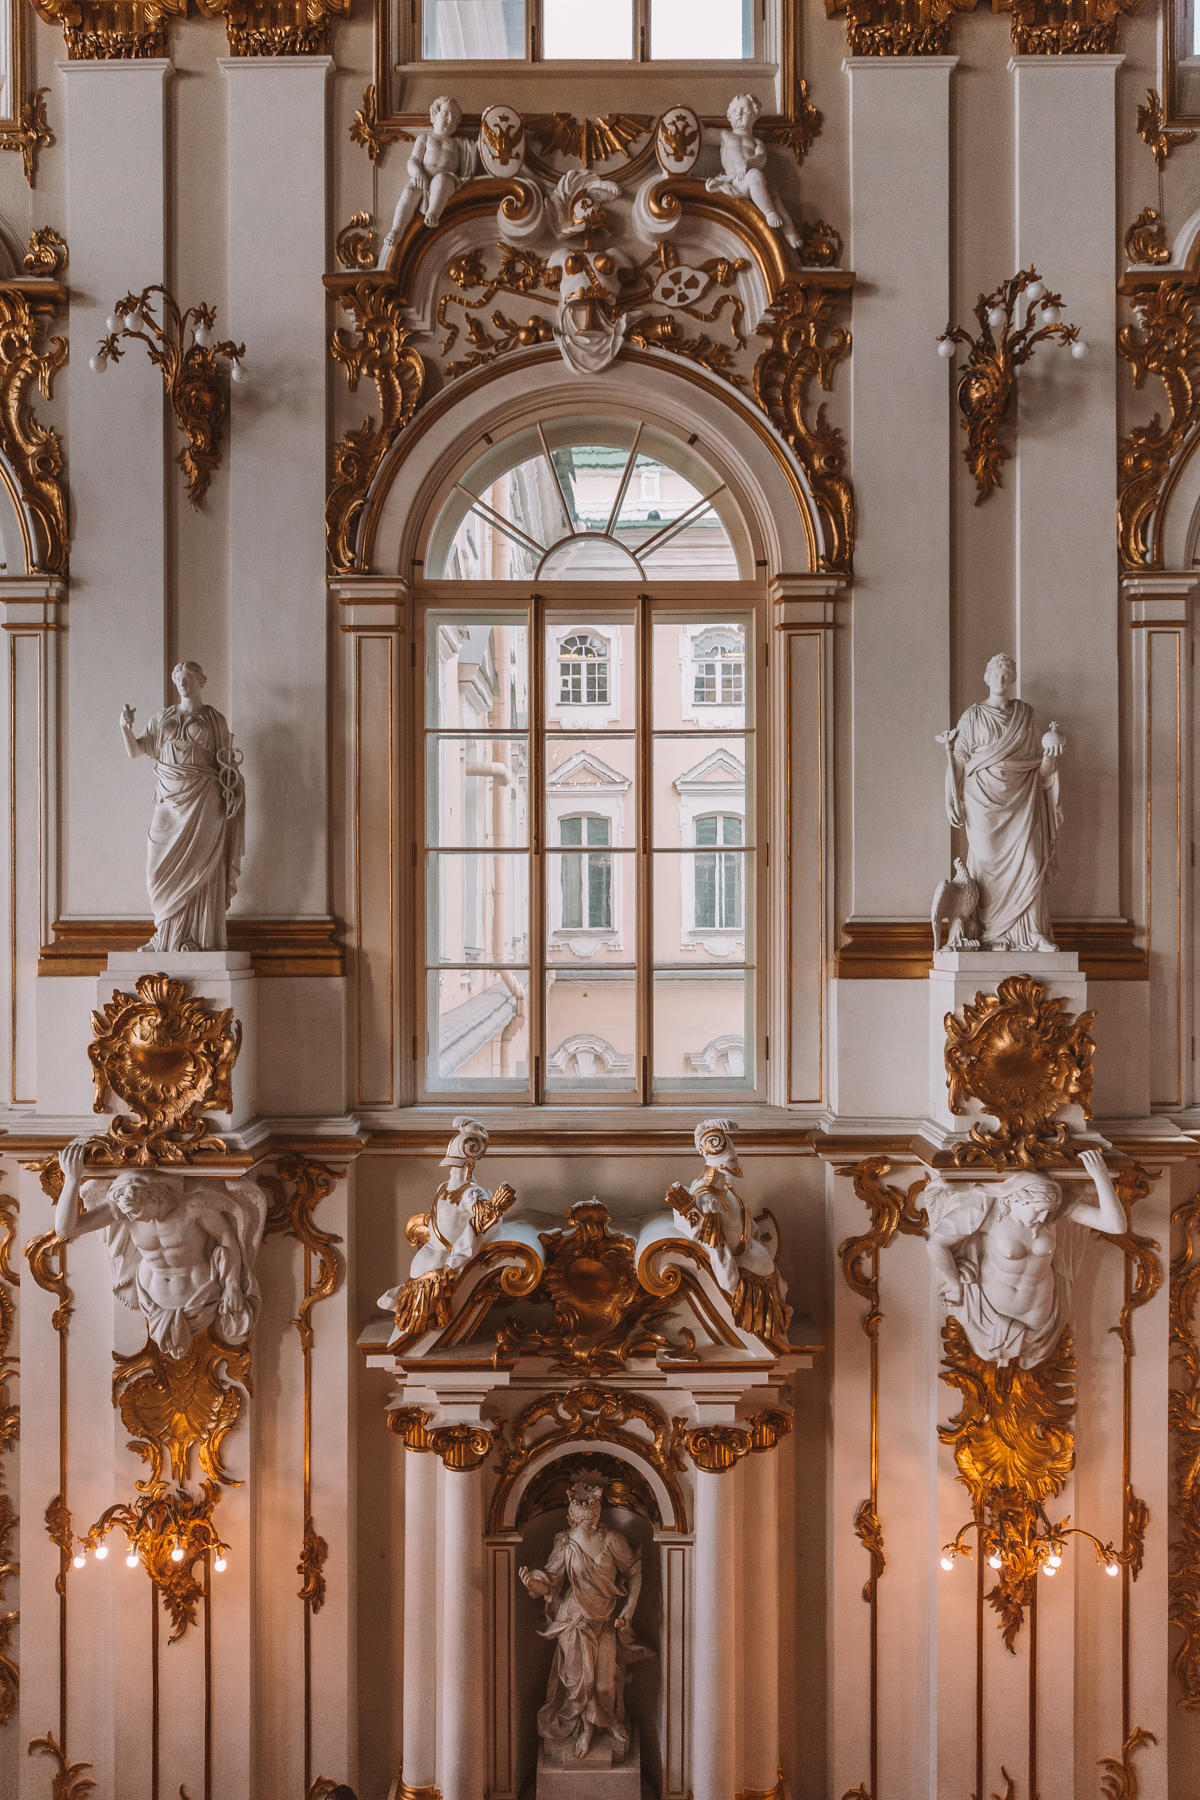 thestylejungle-Russia-Saint-Petersburg-Winter-Palace-interior-travel-blog